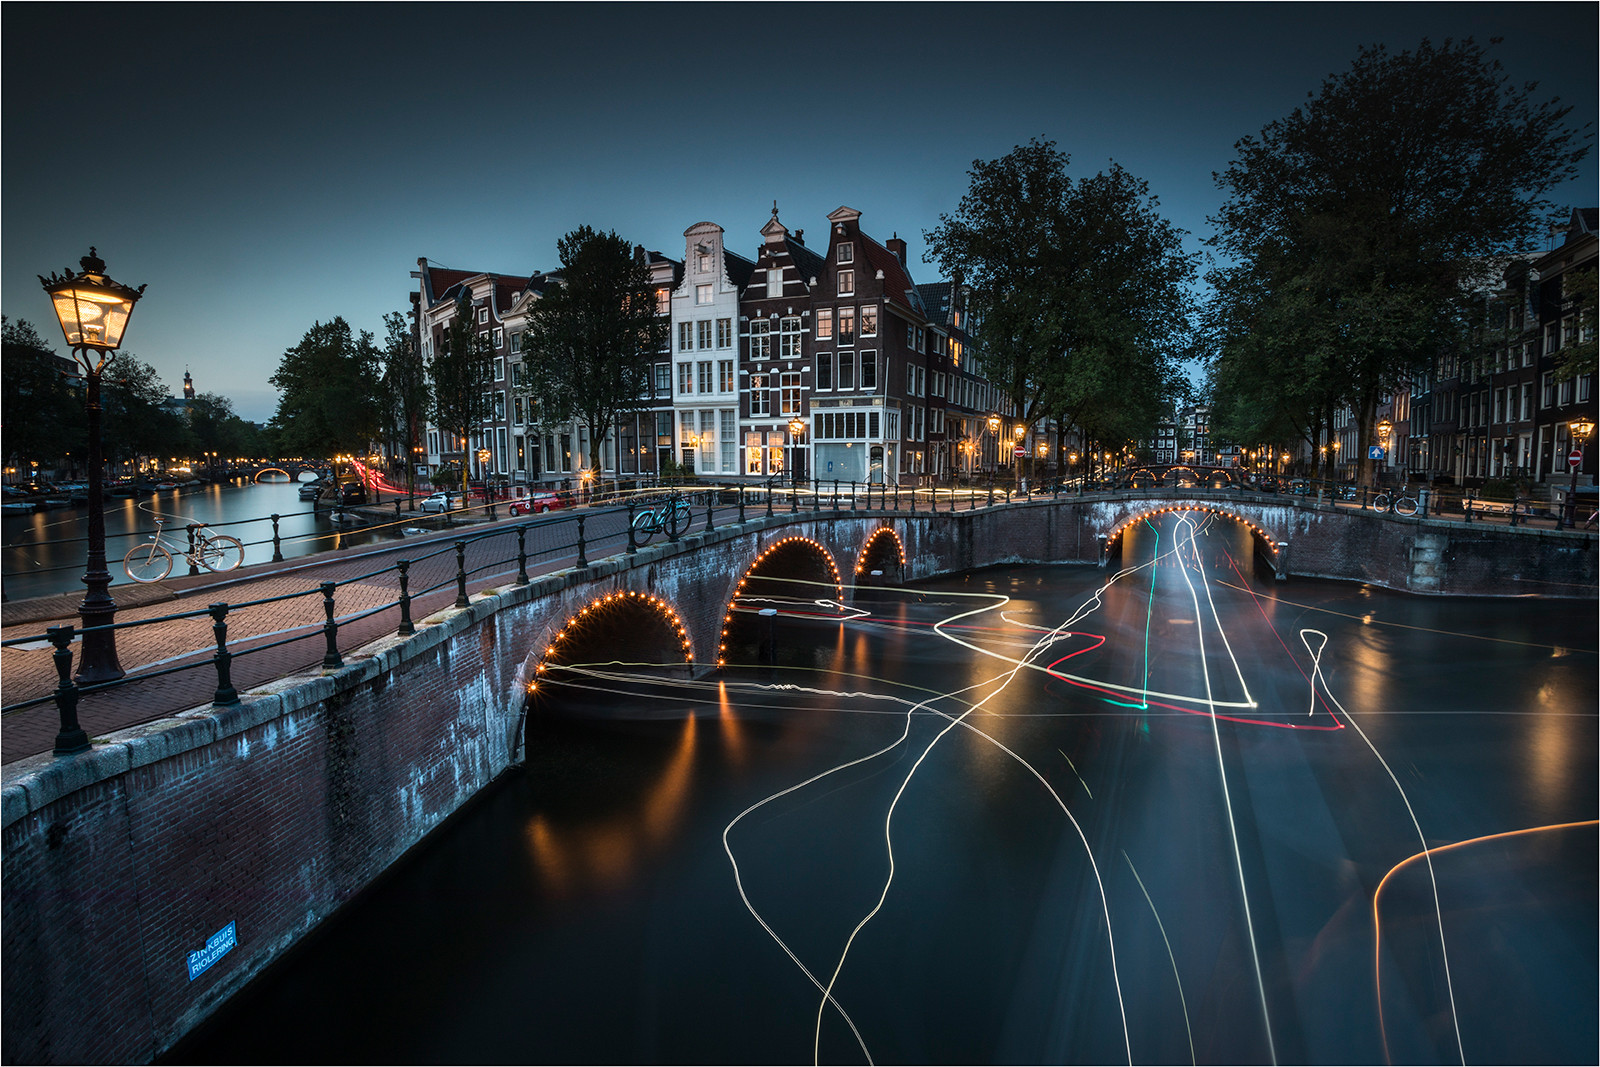 COLOUR - Electric Amsterdam by Paul Killeen (13 marks) - Starred